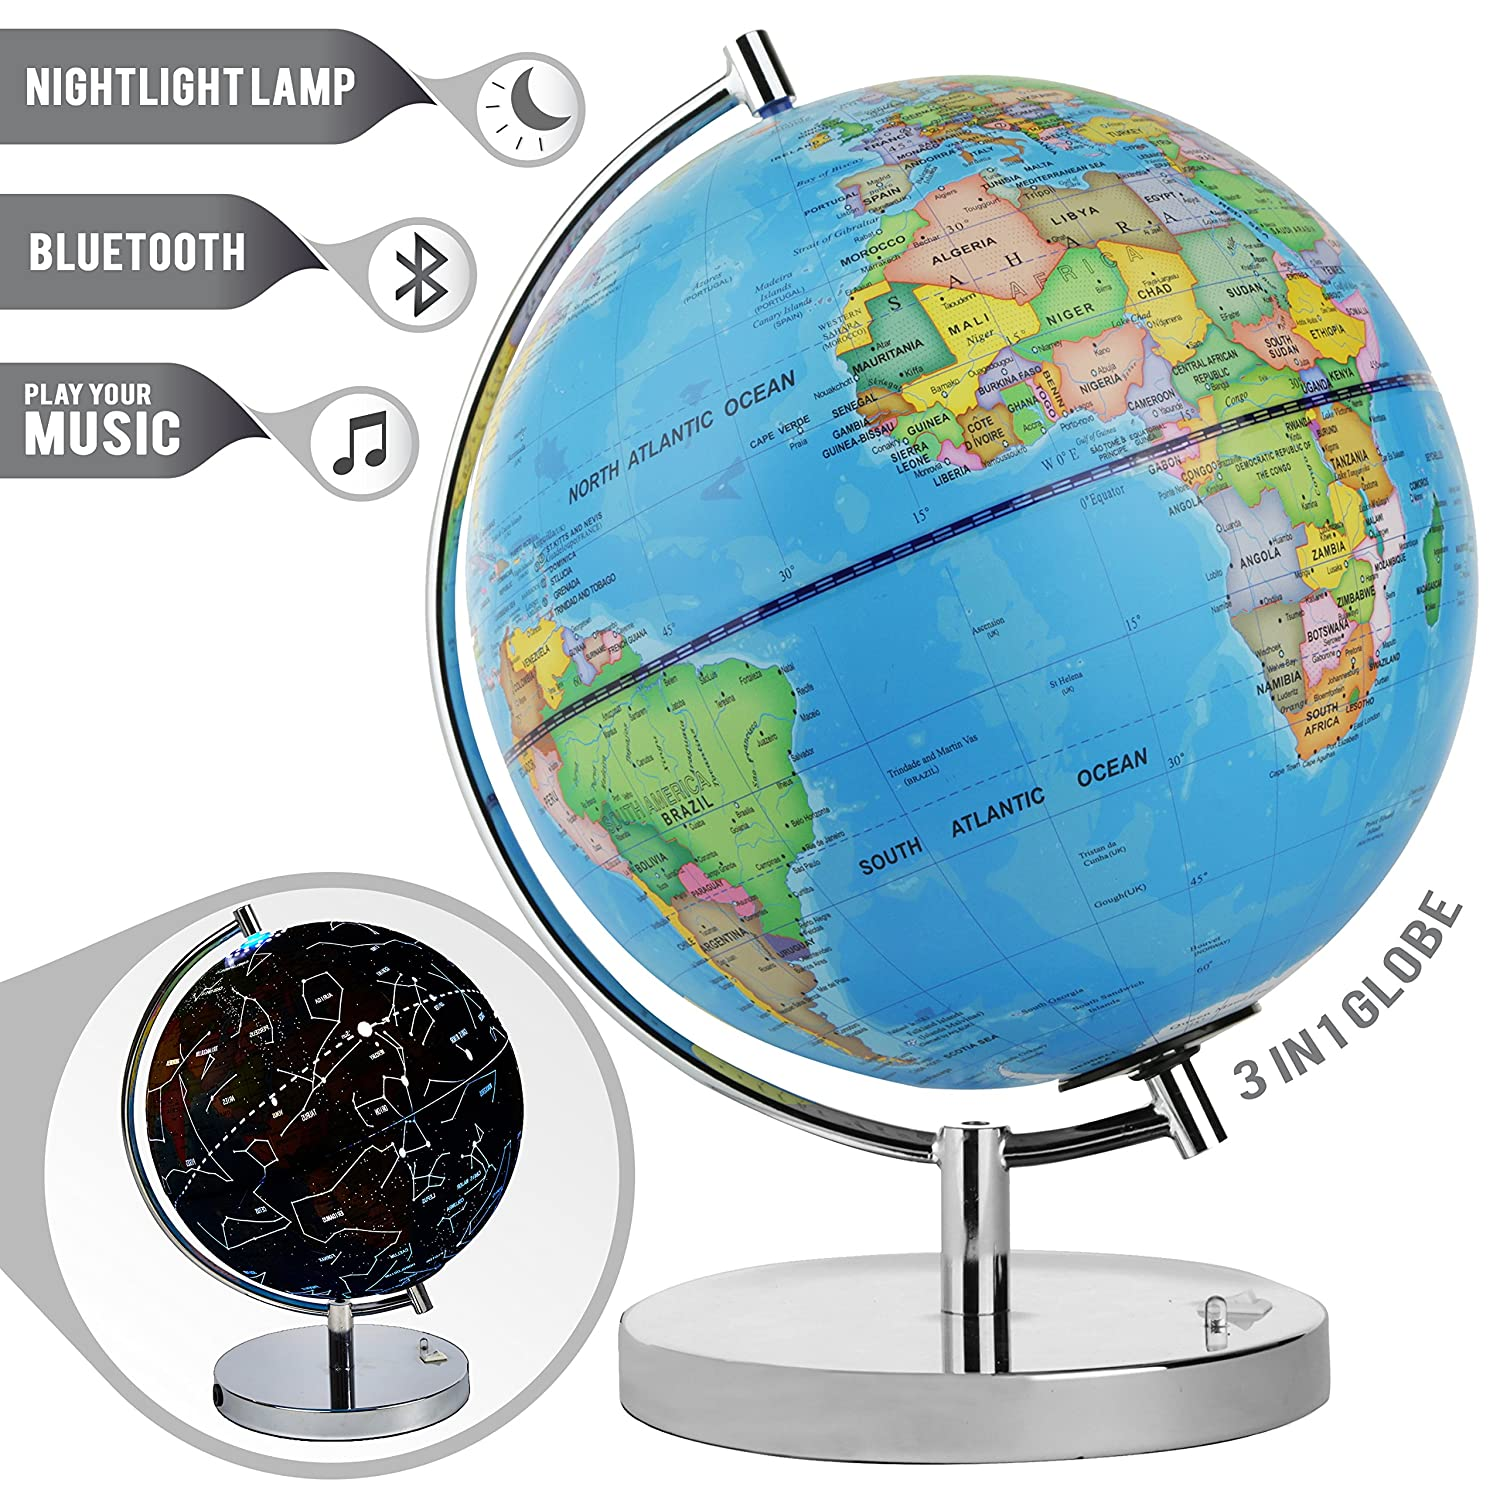 Amazon led light up globe with bluetooth speaker chrome base amazon led light up globe with bluetooth speaker chrome base and detailed world map constellations glow at night projects star lights on ceiling gumiabroncs Image collections